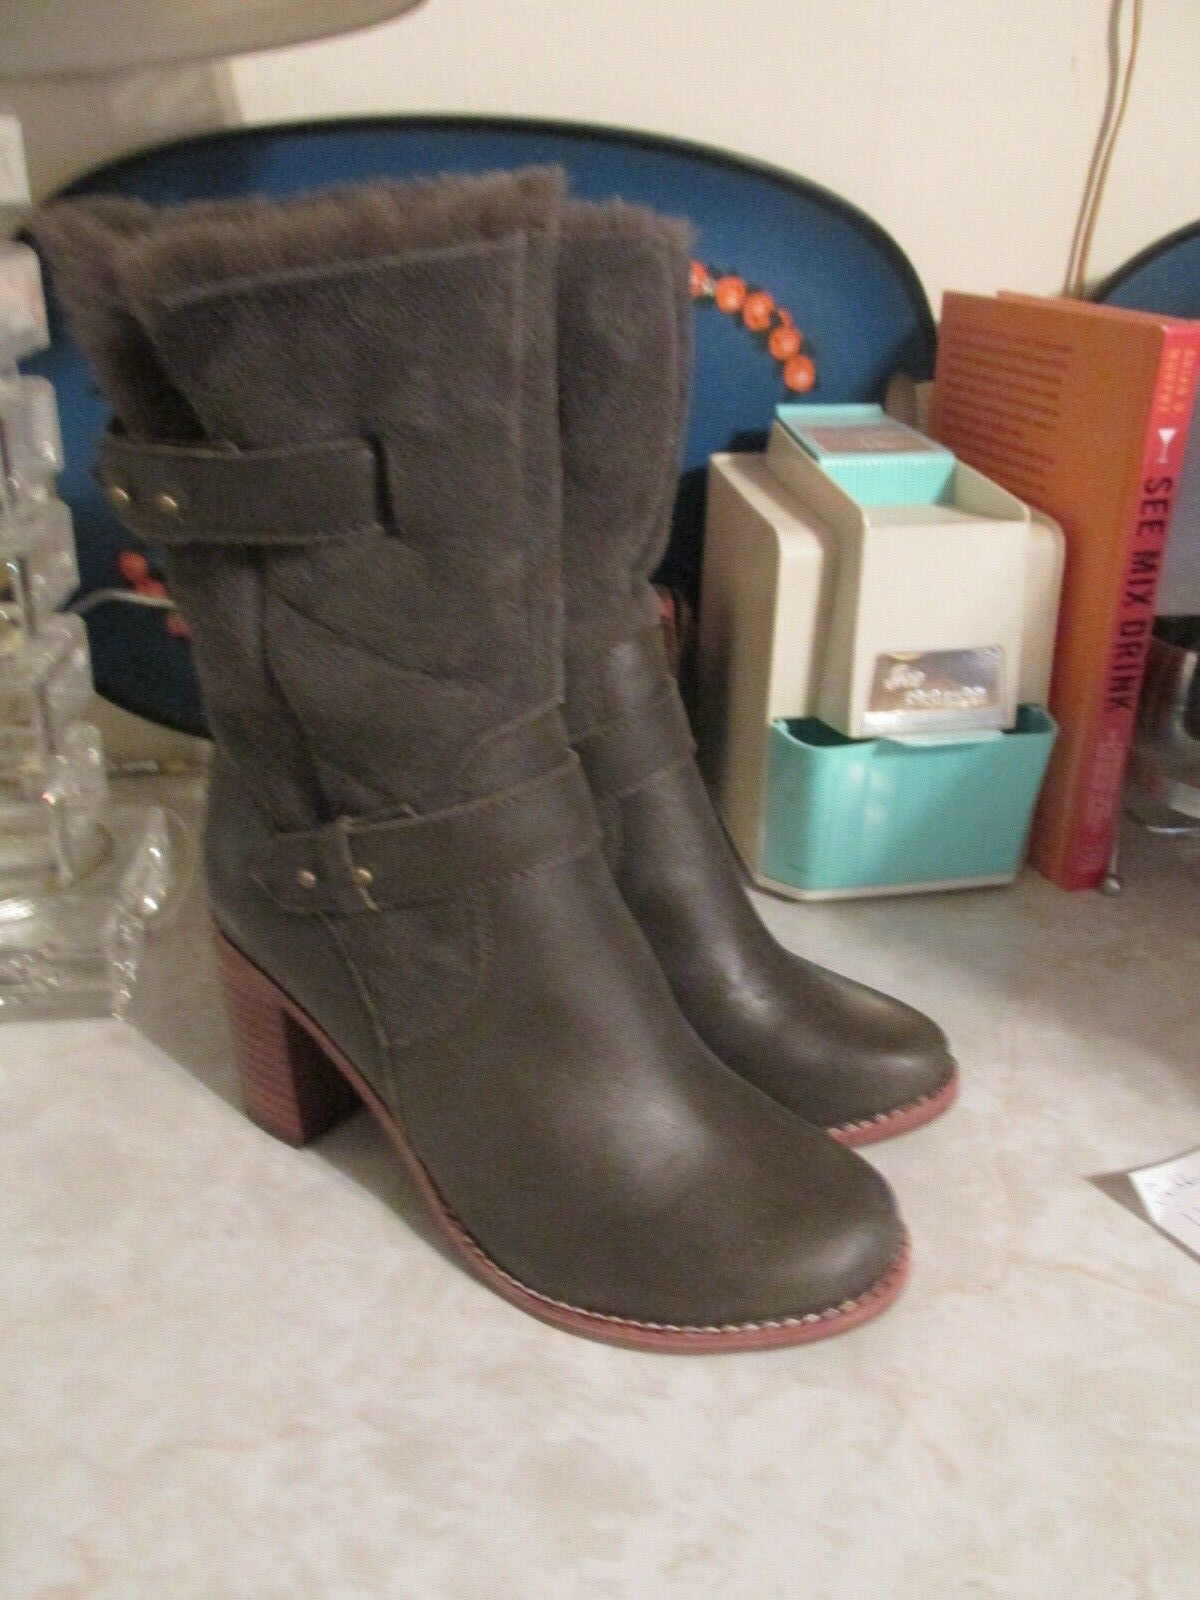 JEFFREY CAMPBELL Sz 6 Arbour  Leather Shearling Heel Boots  NWOB